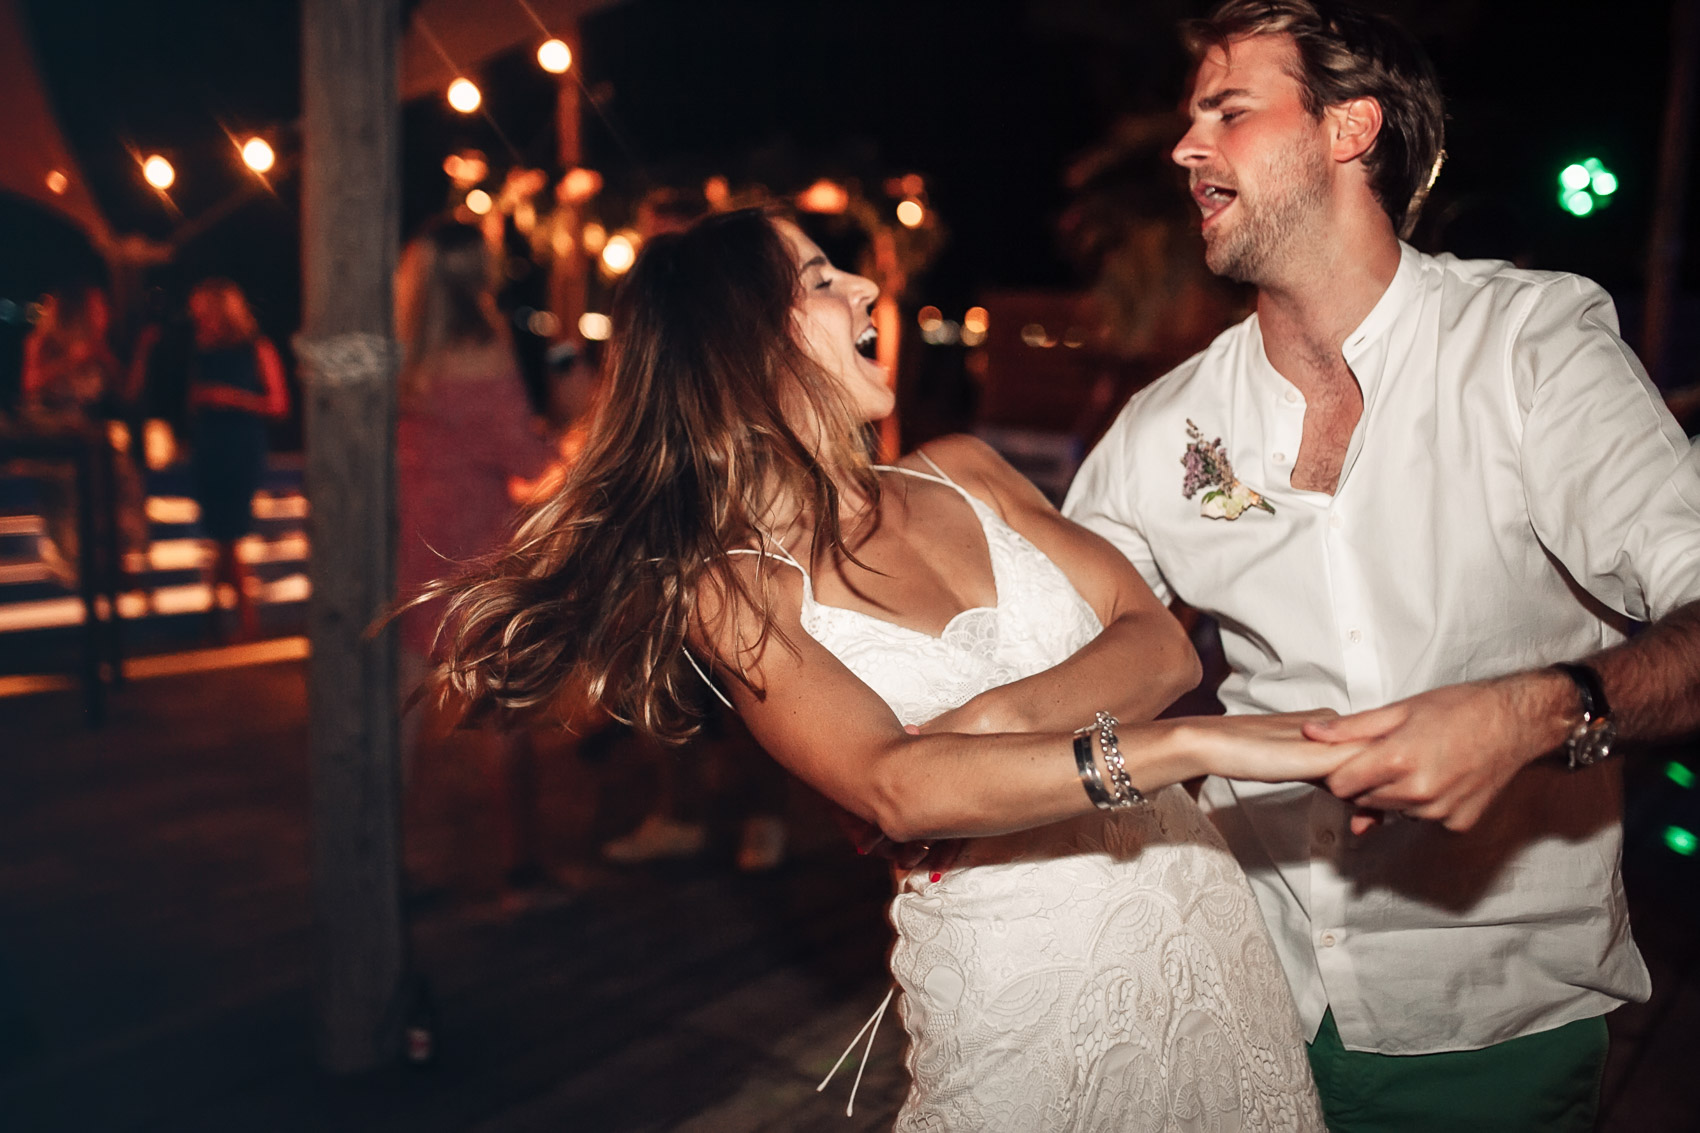 wedding couple dancing restaurant lights beach photography